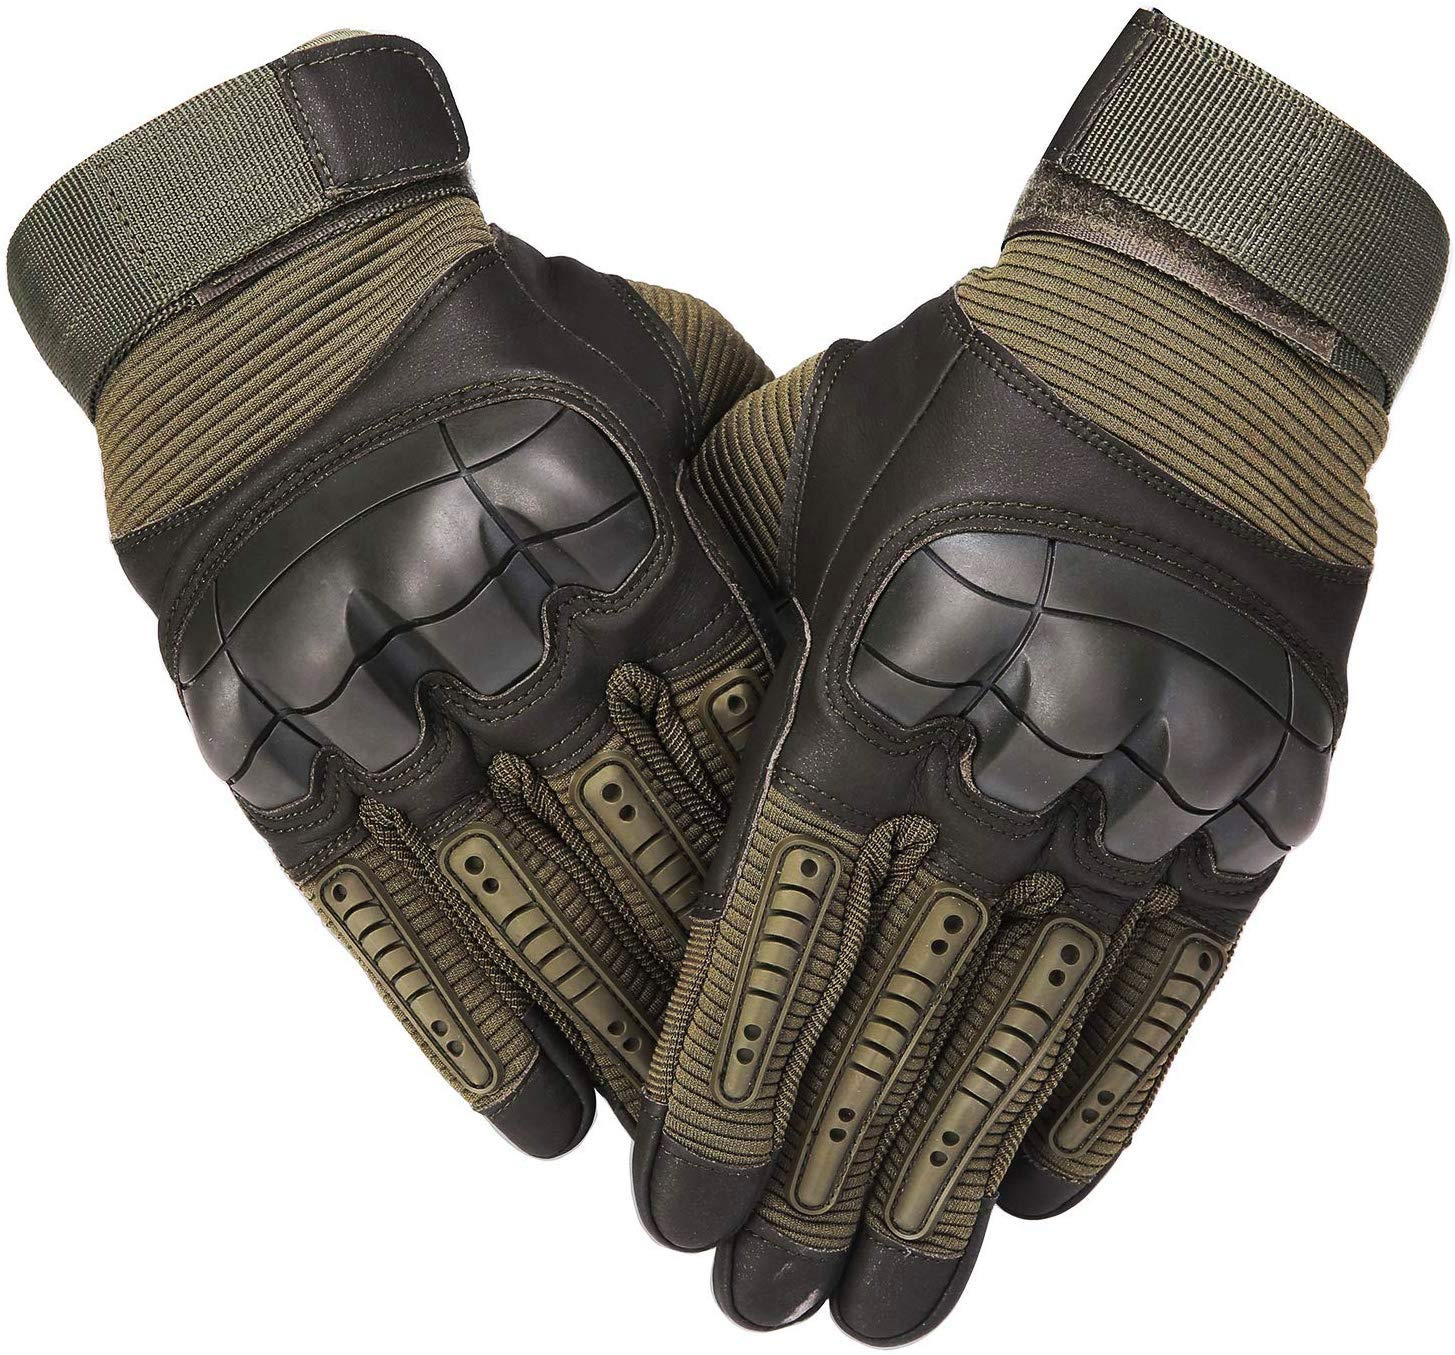 B07F2KCJB7 SHAWINGO Touch Screen Tactical Army Military Rubber Hard Knuckle Gloves for Motorcycle Cycling Hunting Airsoft Paintball Shooting 81fePWpR3AL